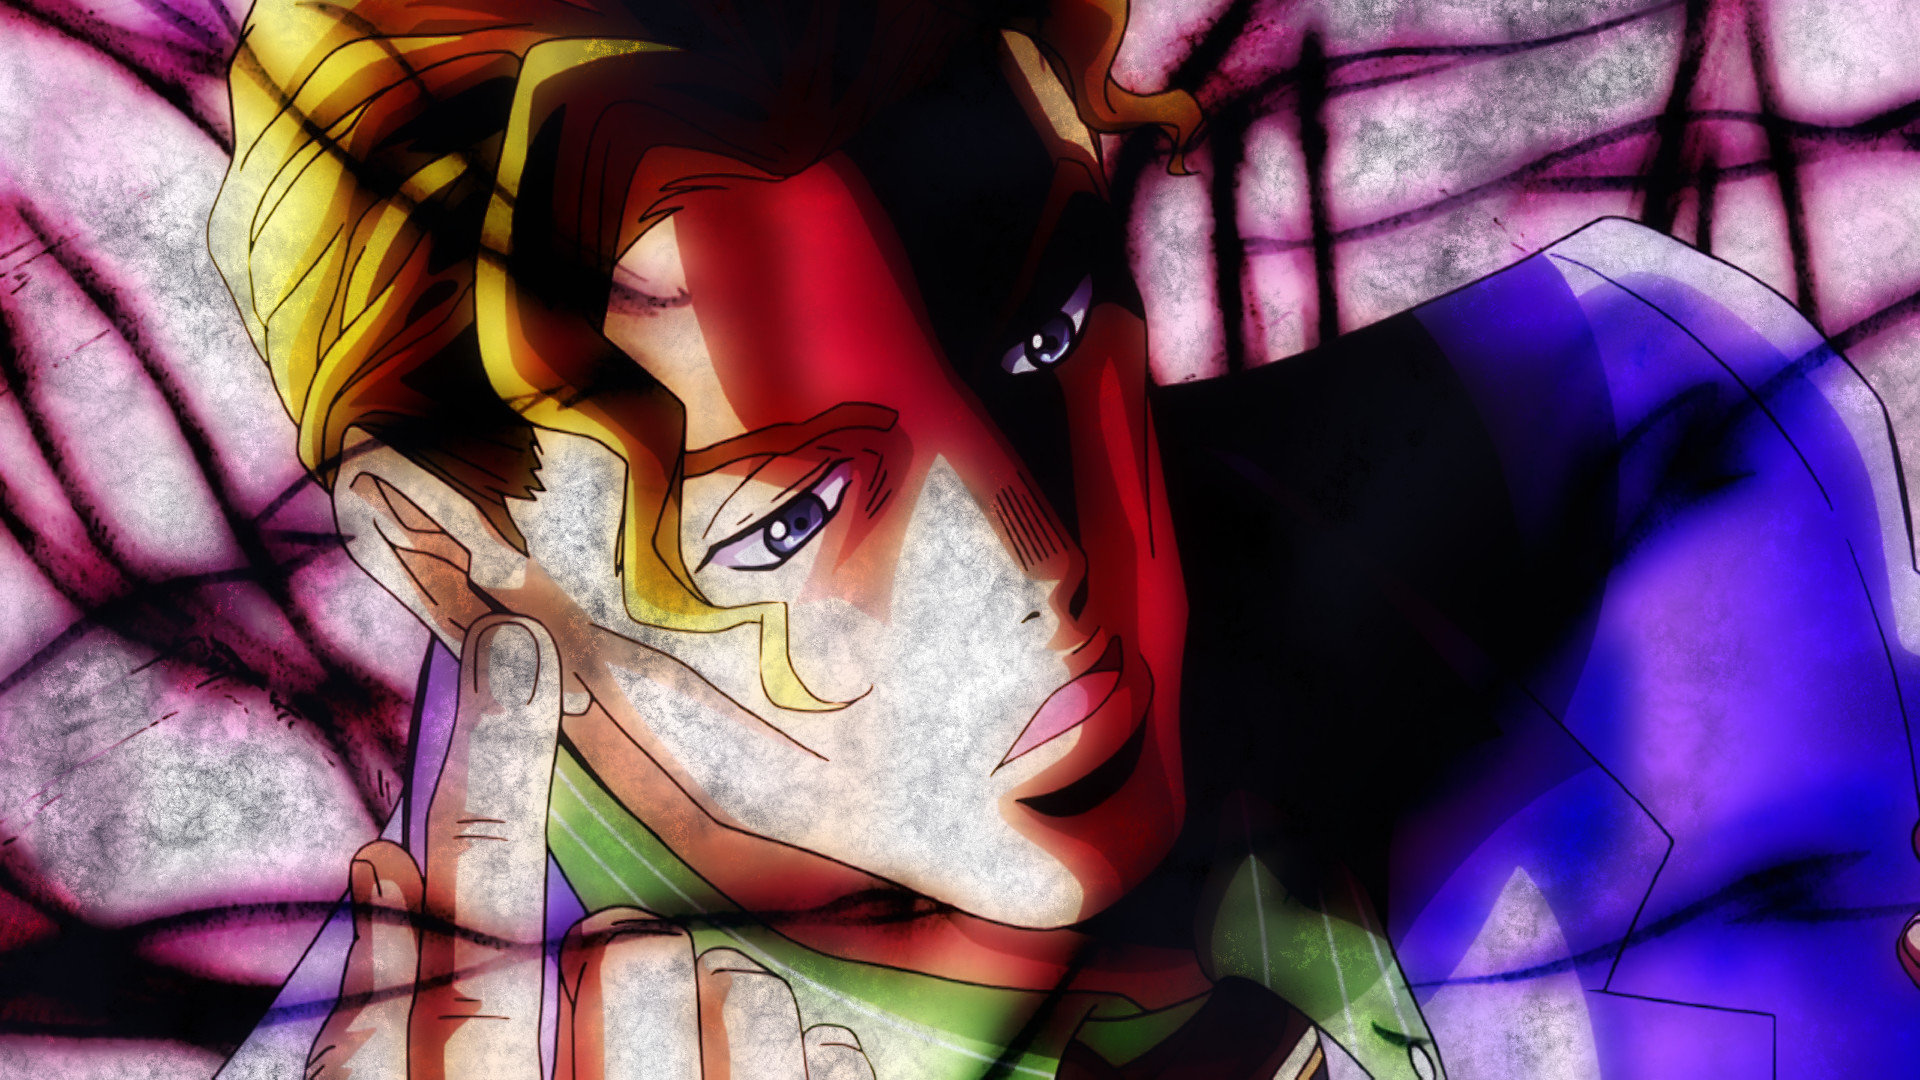 Download hd 1080p Yoshikage Kira PC wallpaper ID:297287 for free